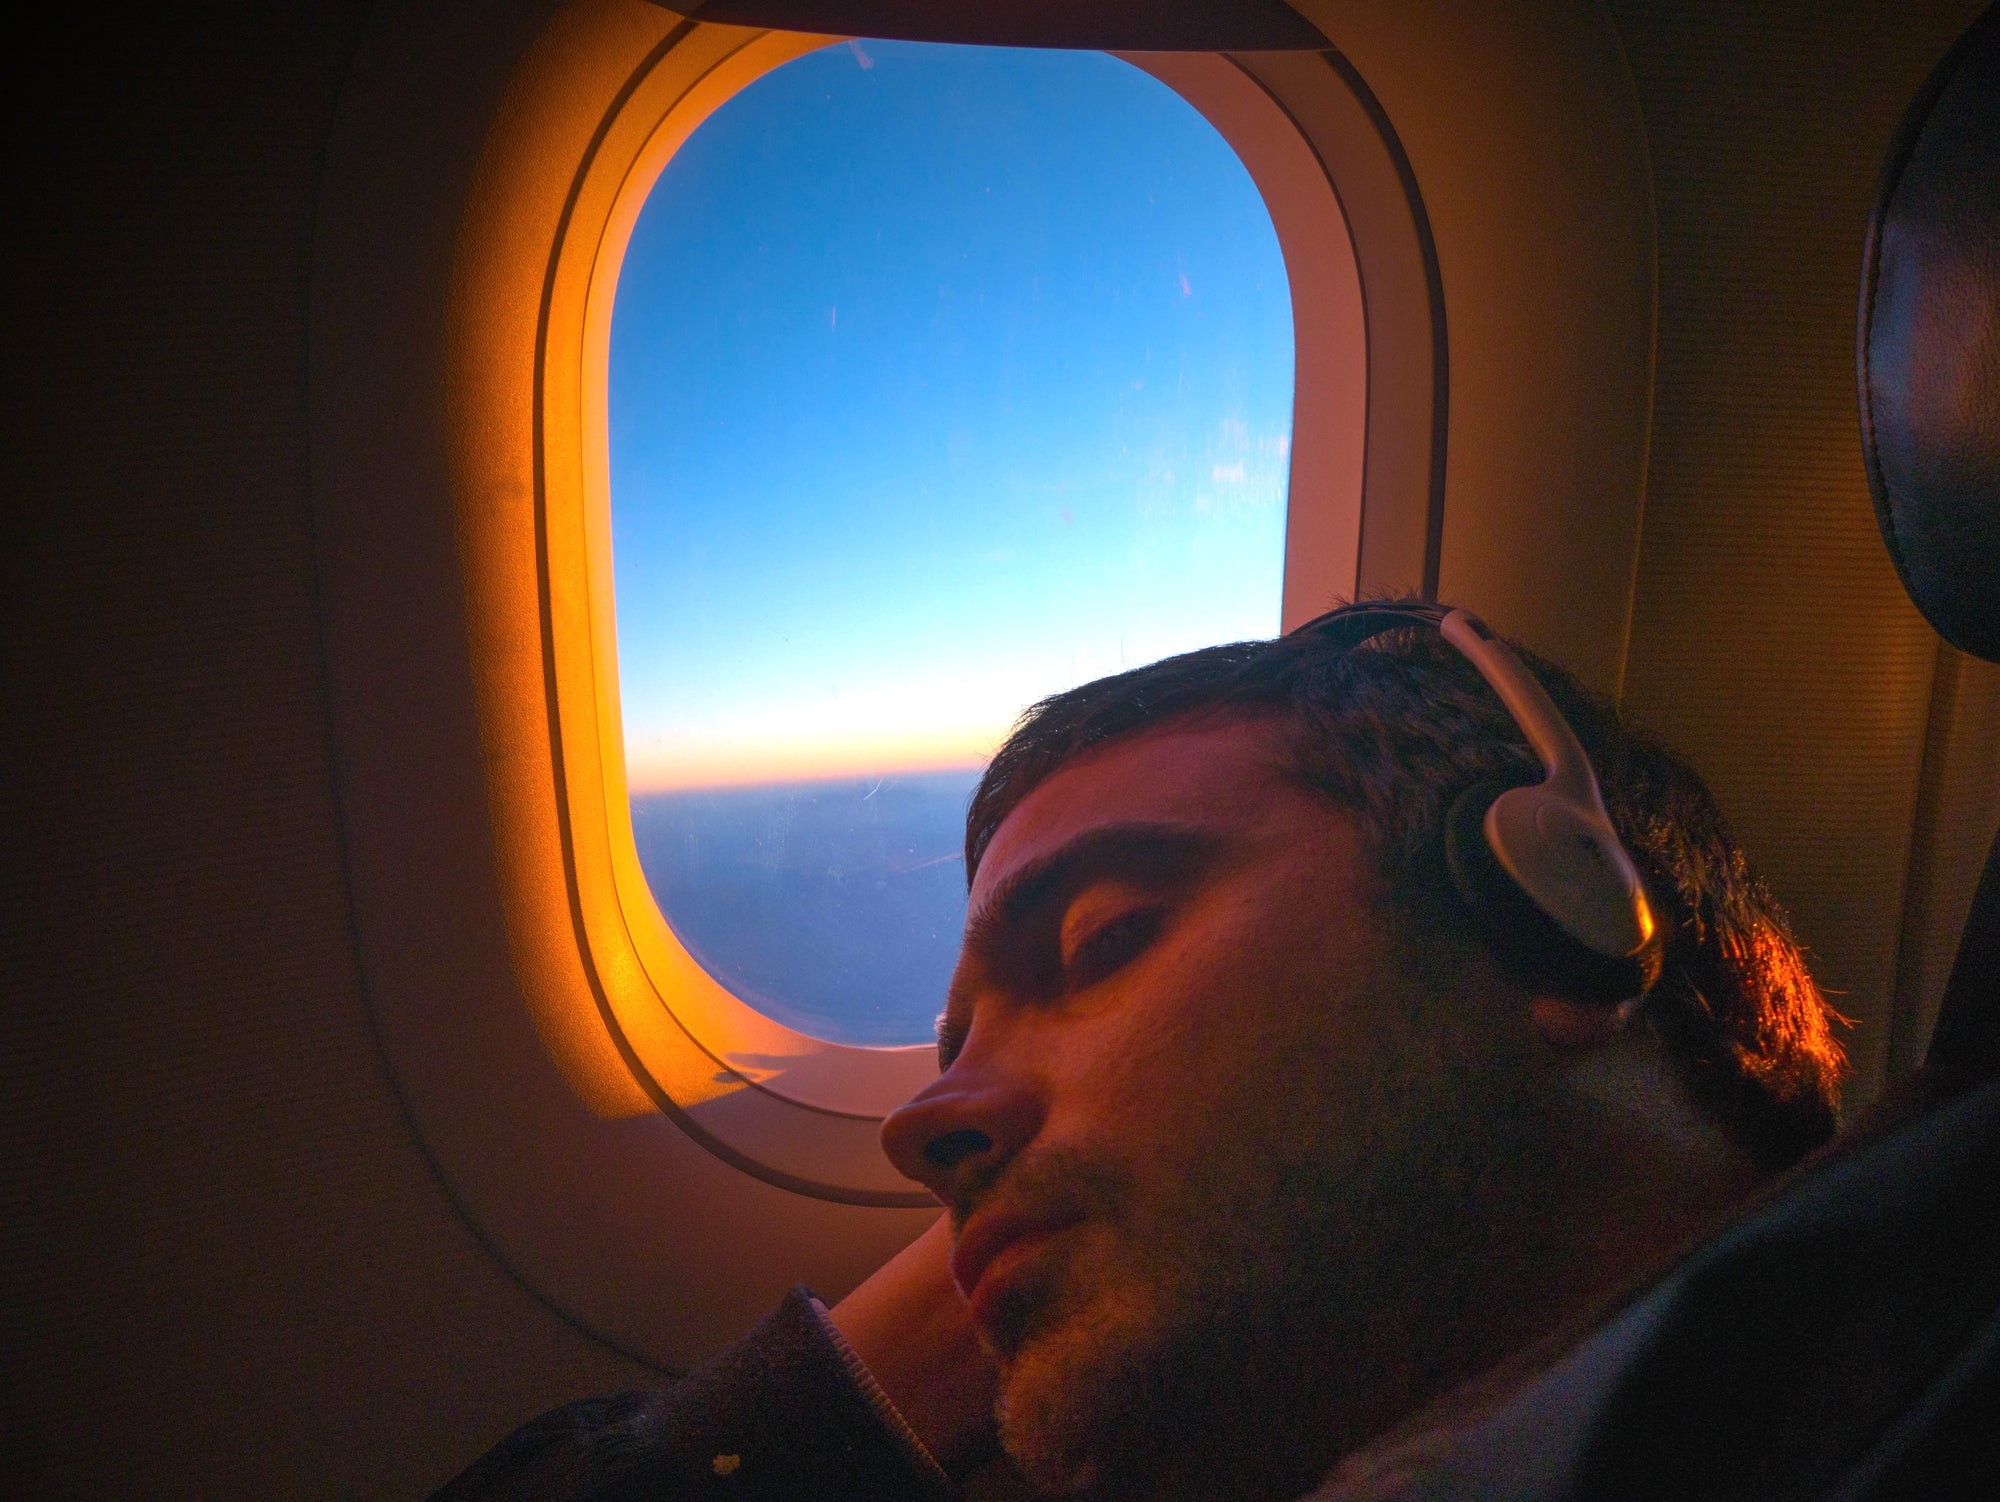 Person sleeping on plane with open window